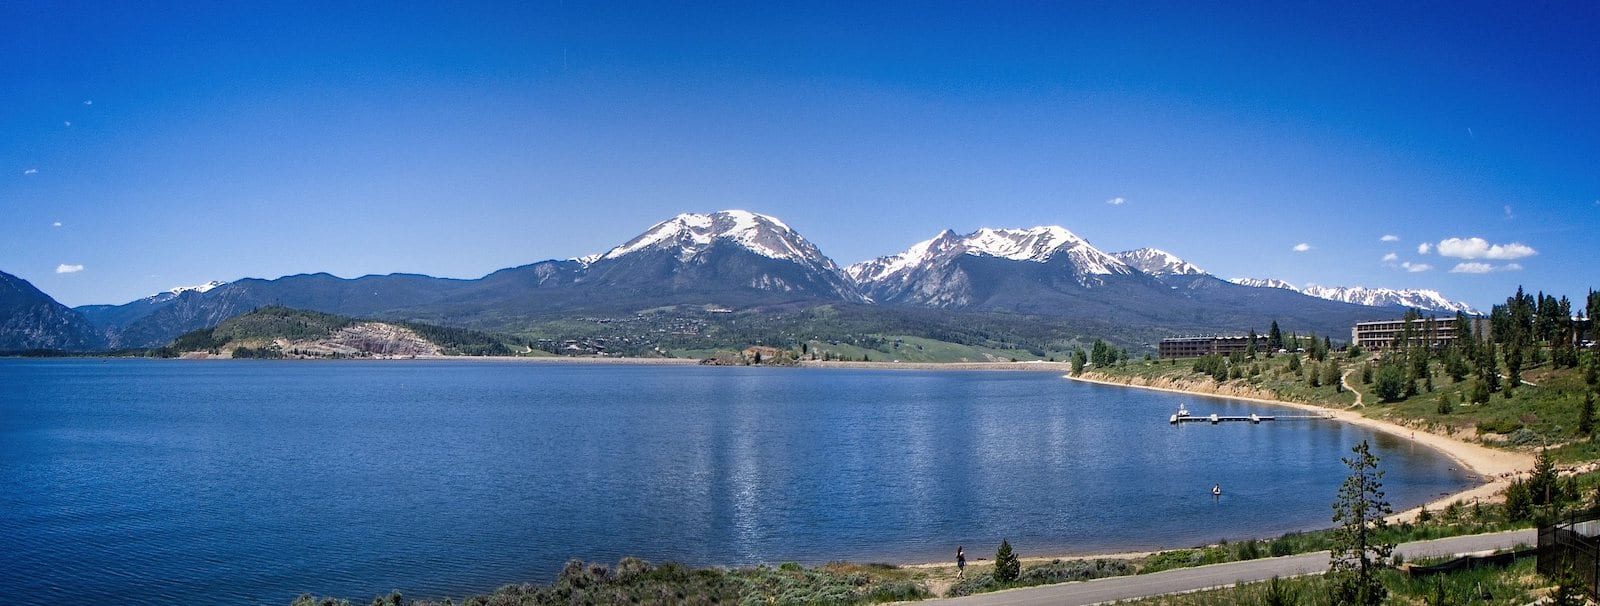 Dillon Reservoir in Dillon, Colorado